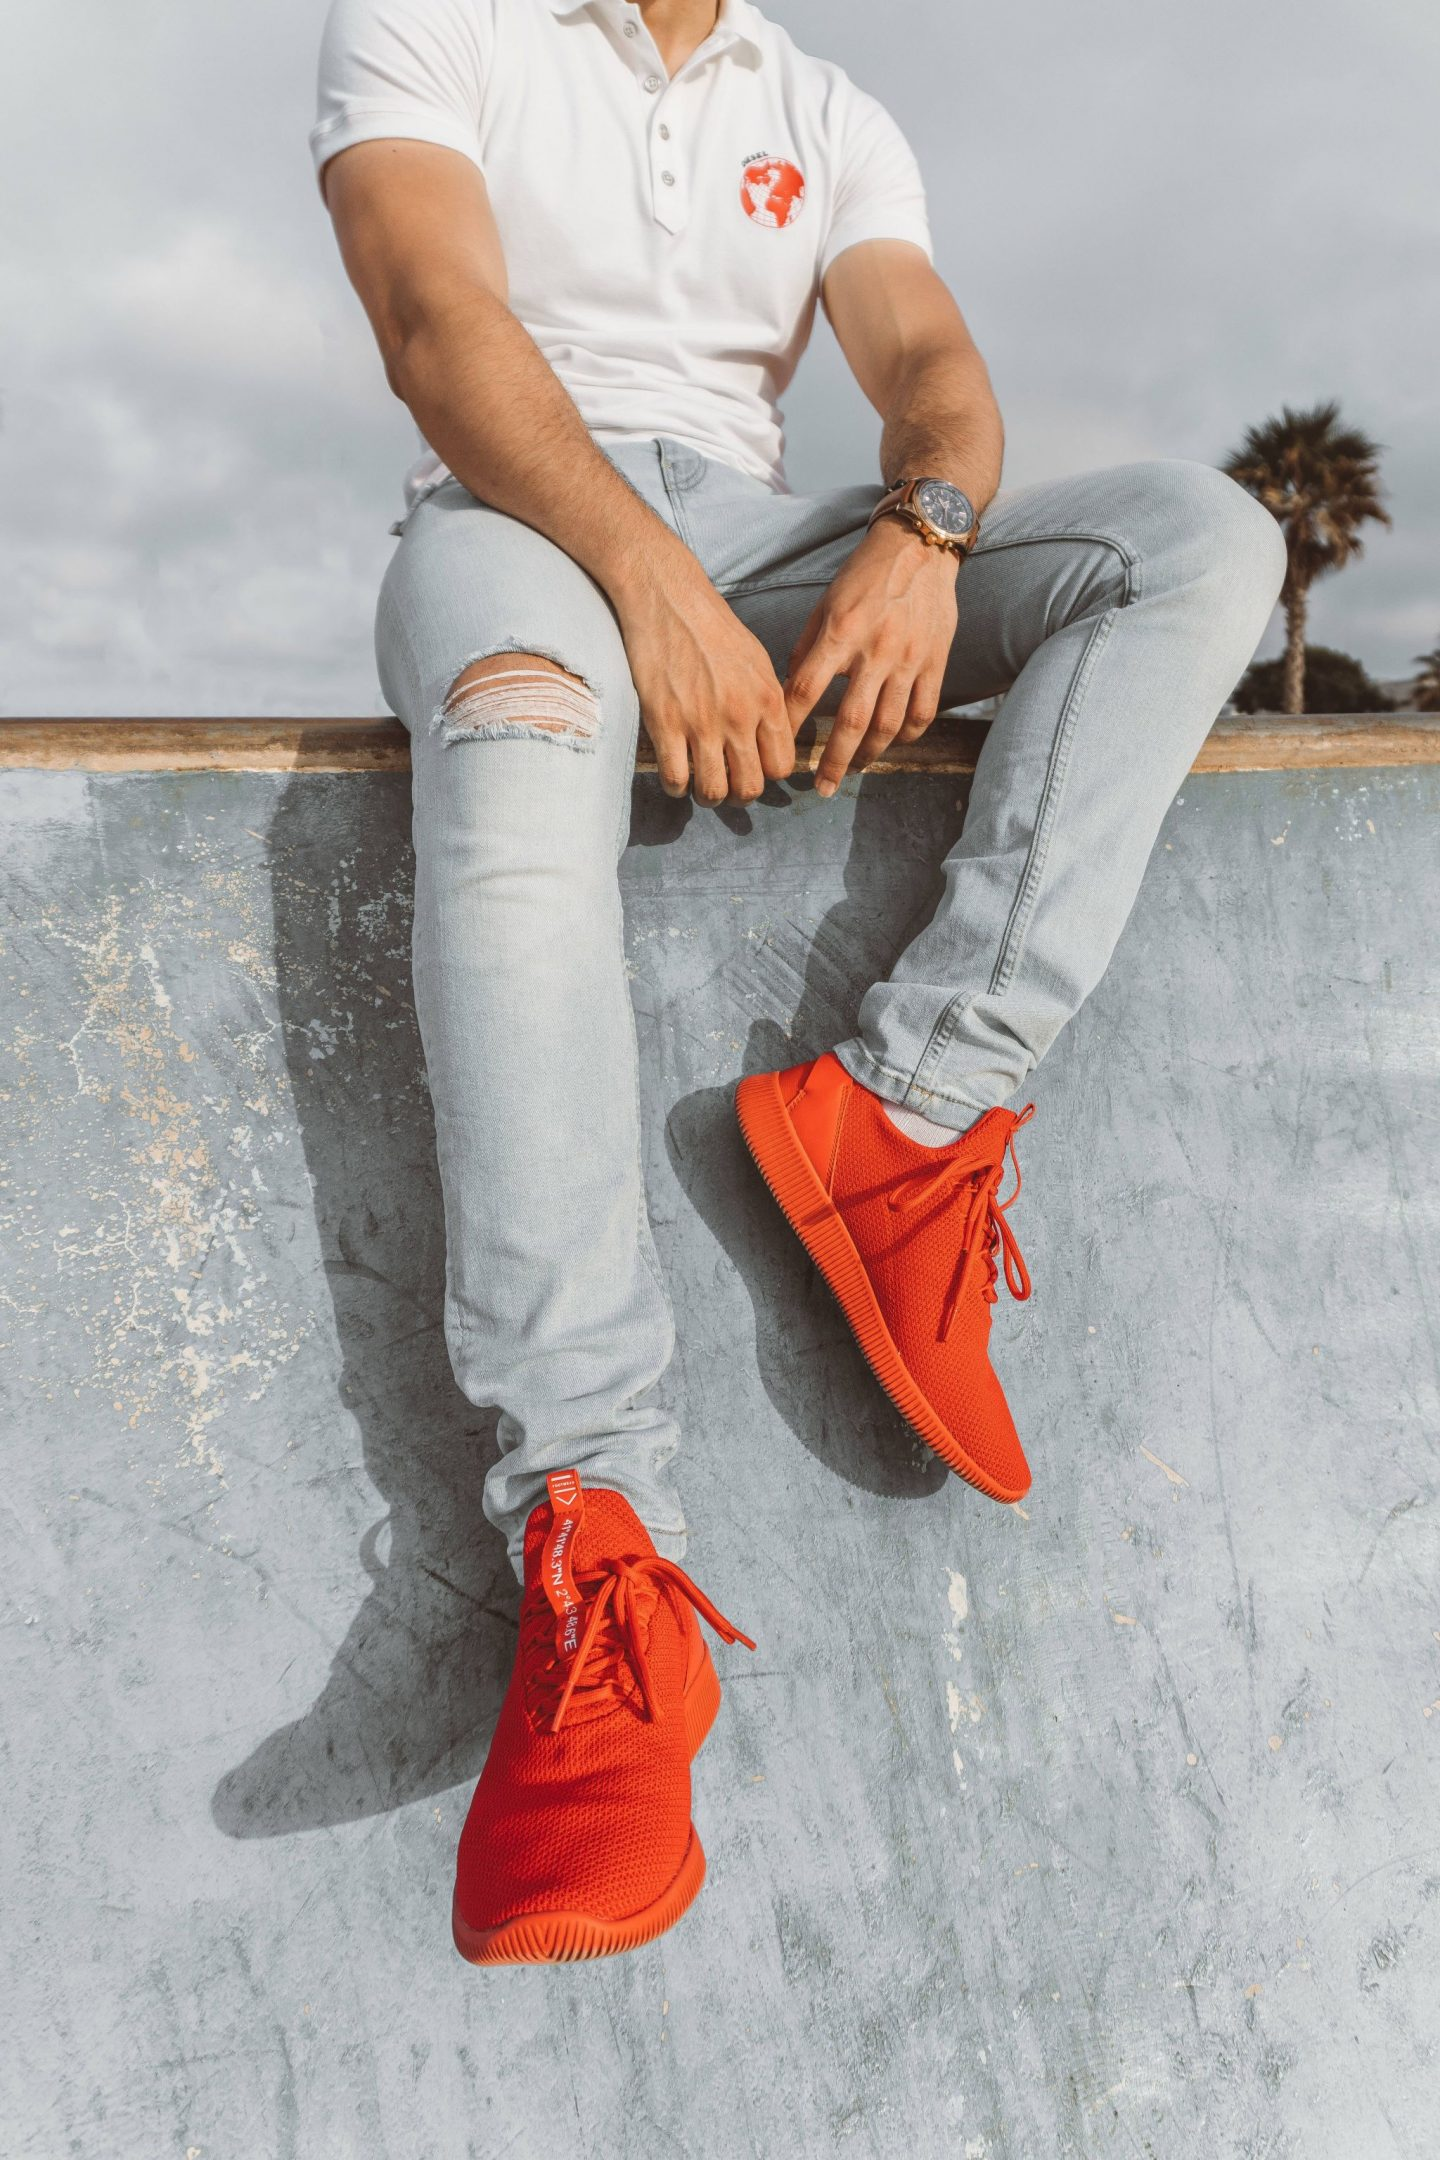 SUMMER STYLES FOR MEN: THE LATEST FASHION TRENDS IN 2021